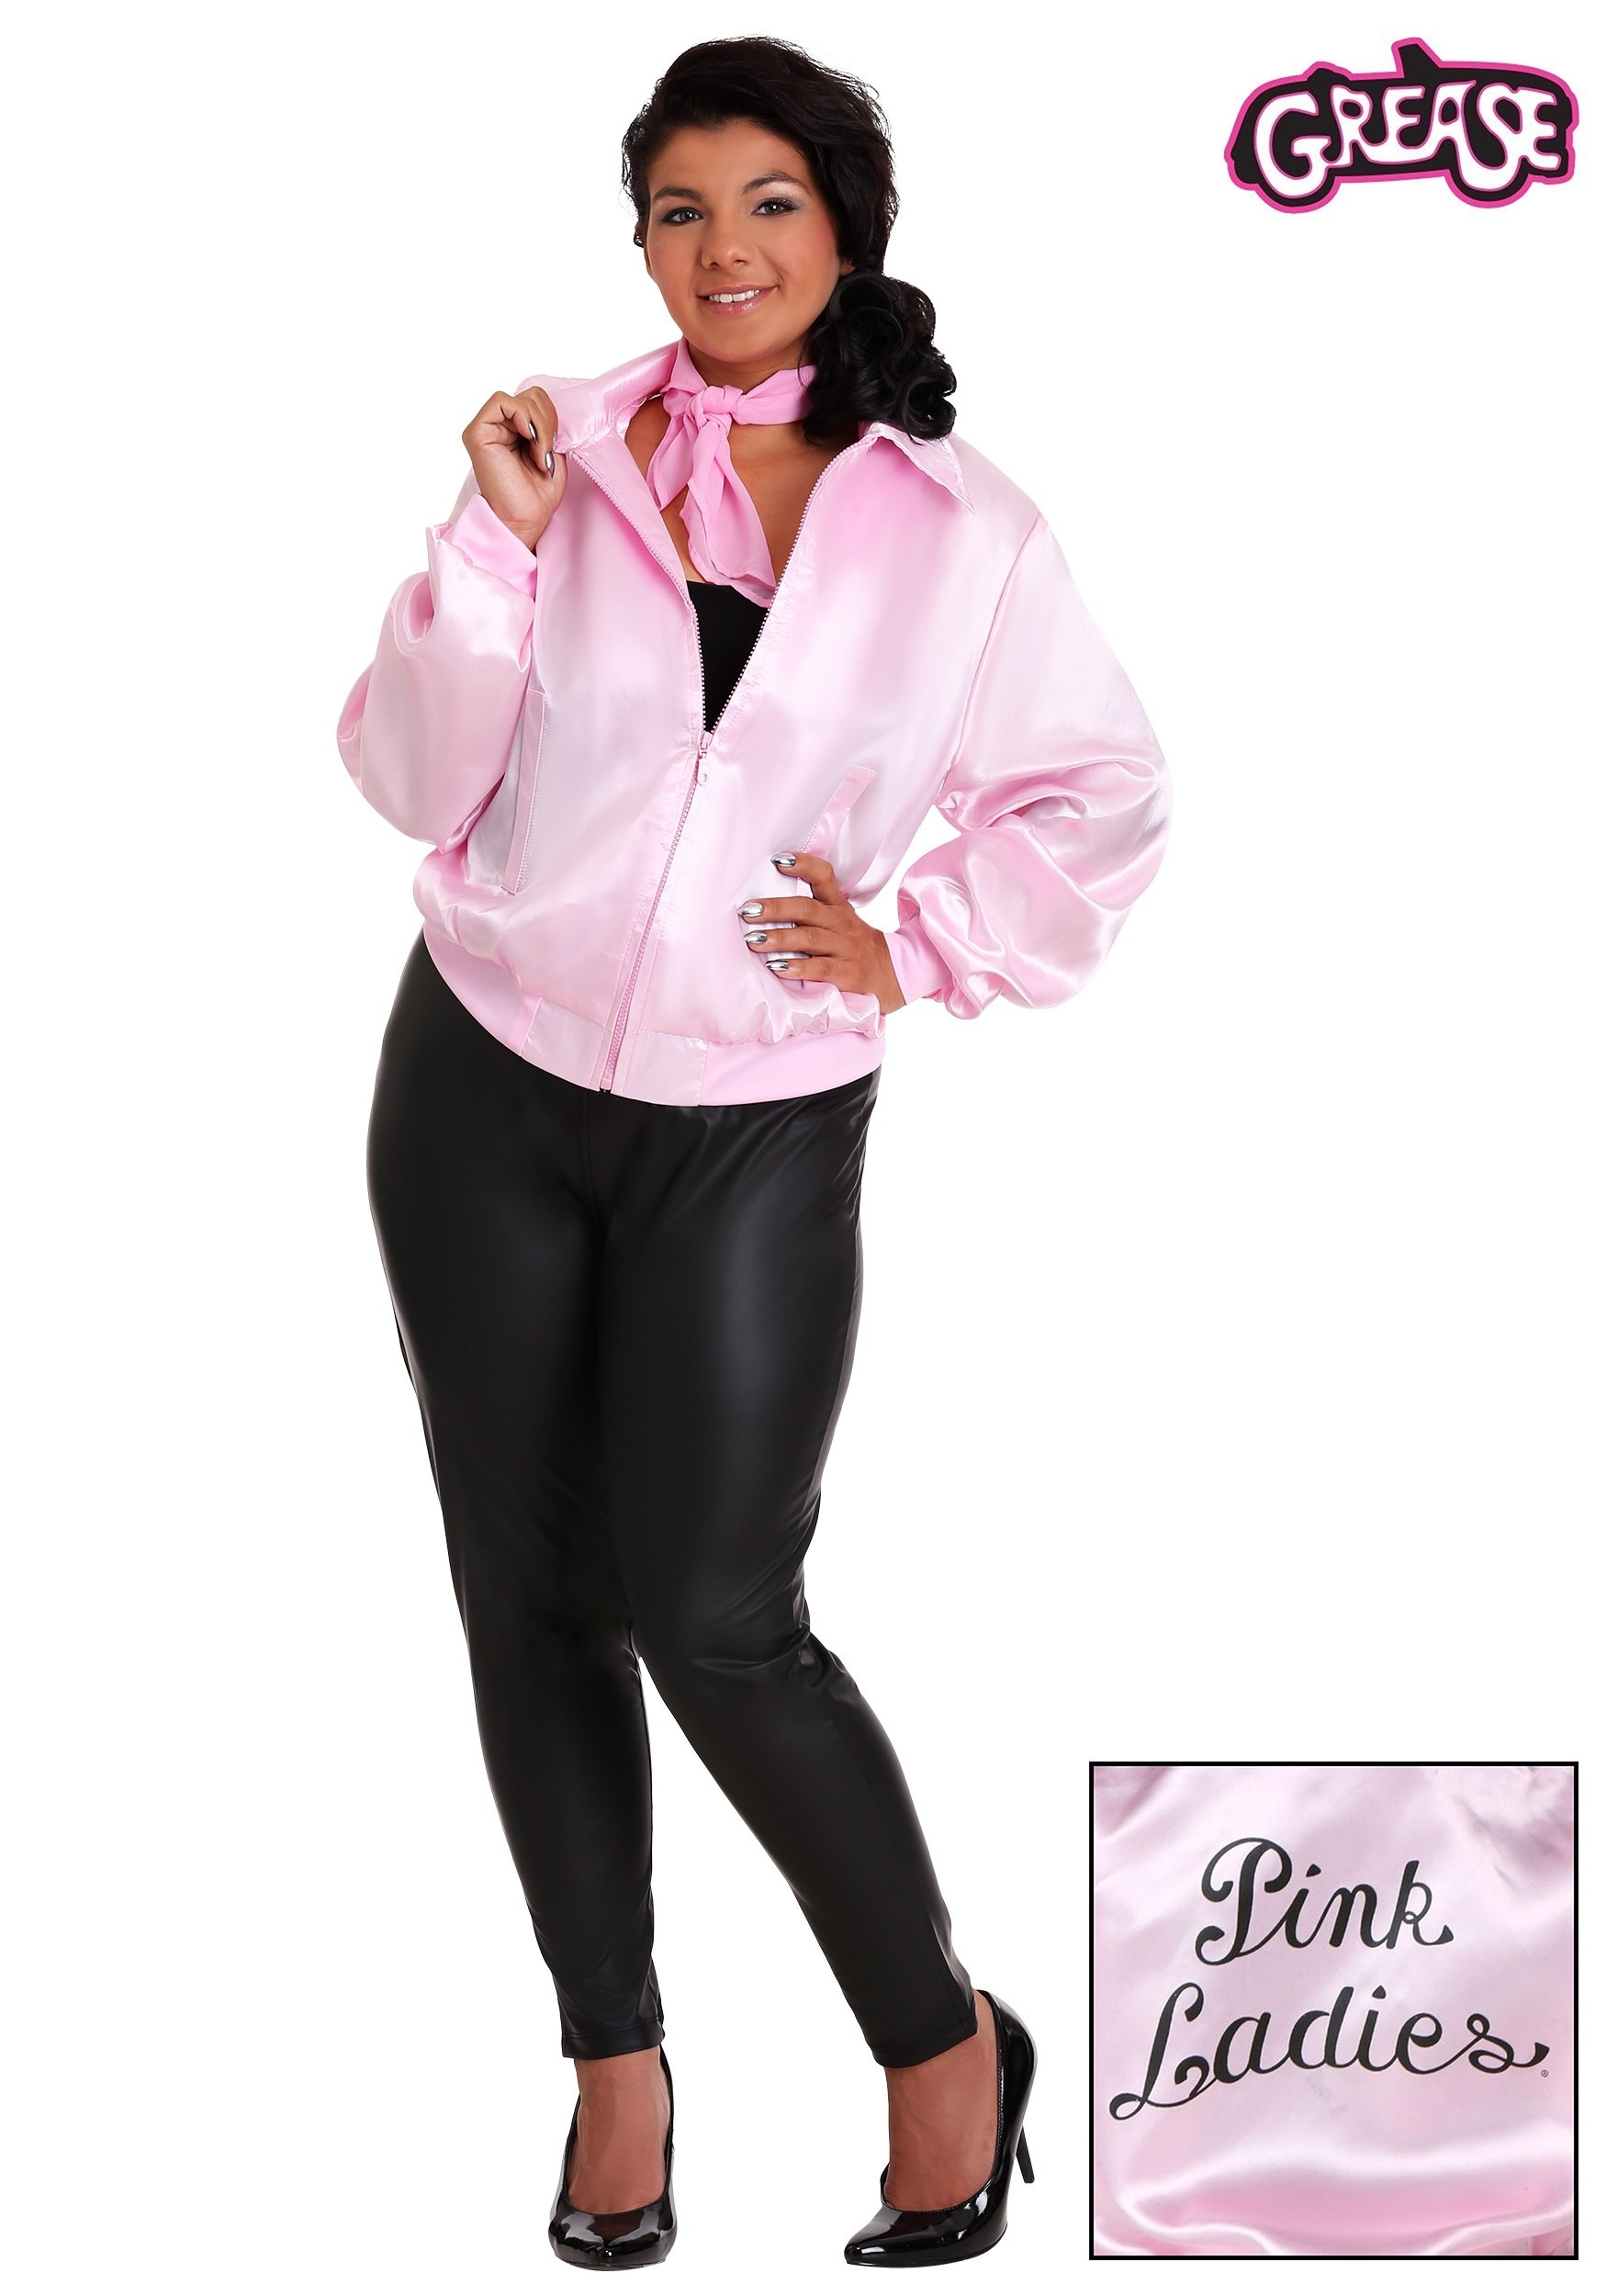 grease plus size pink ladies jacket - Greece Halloween Costumes